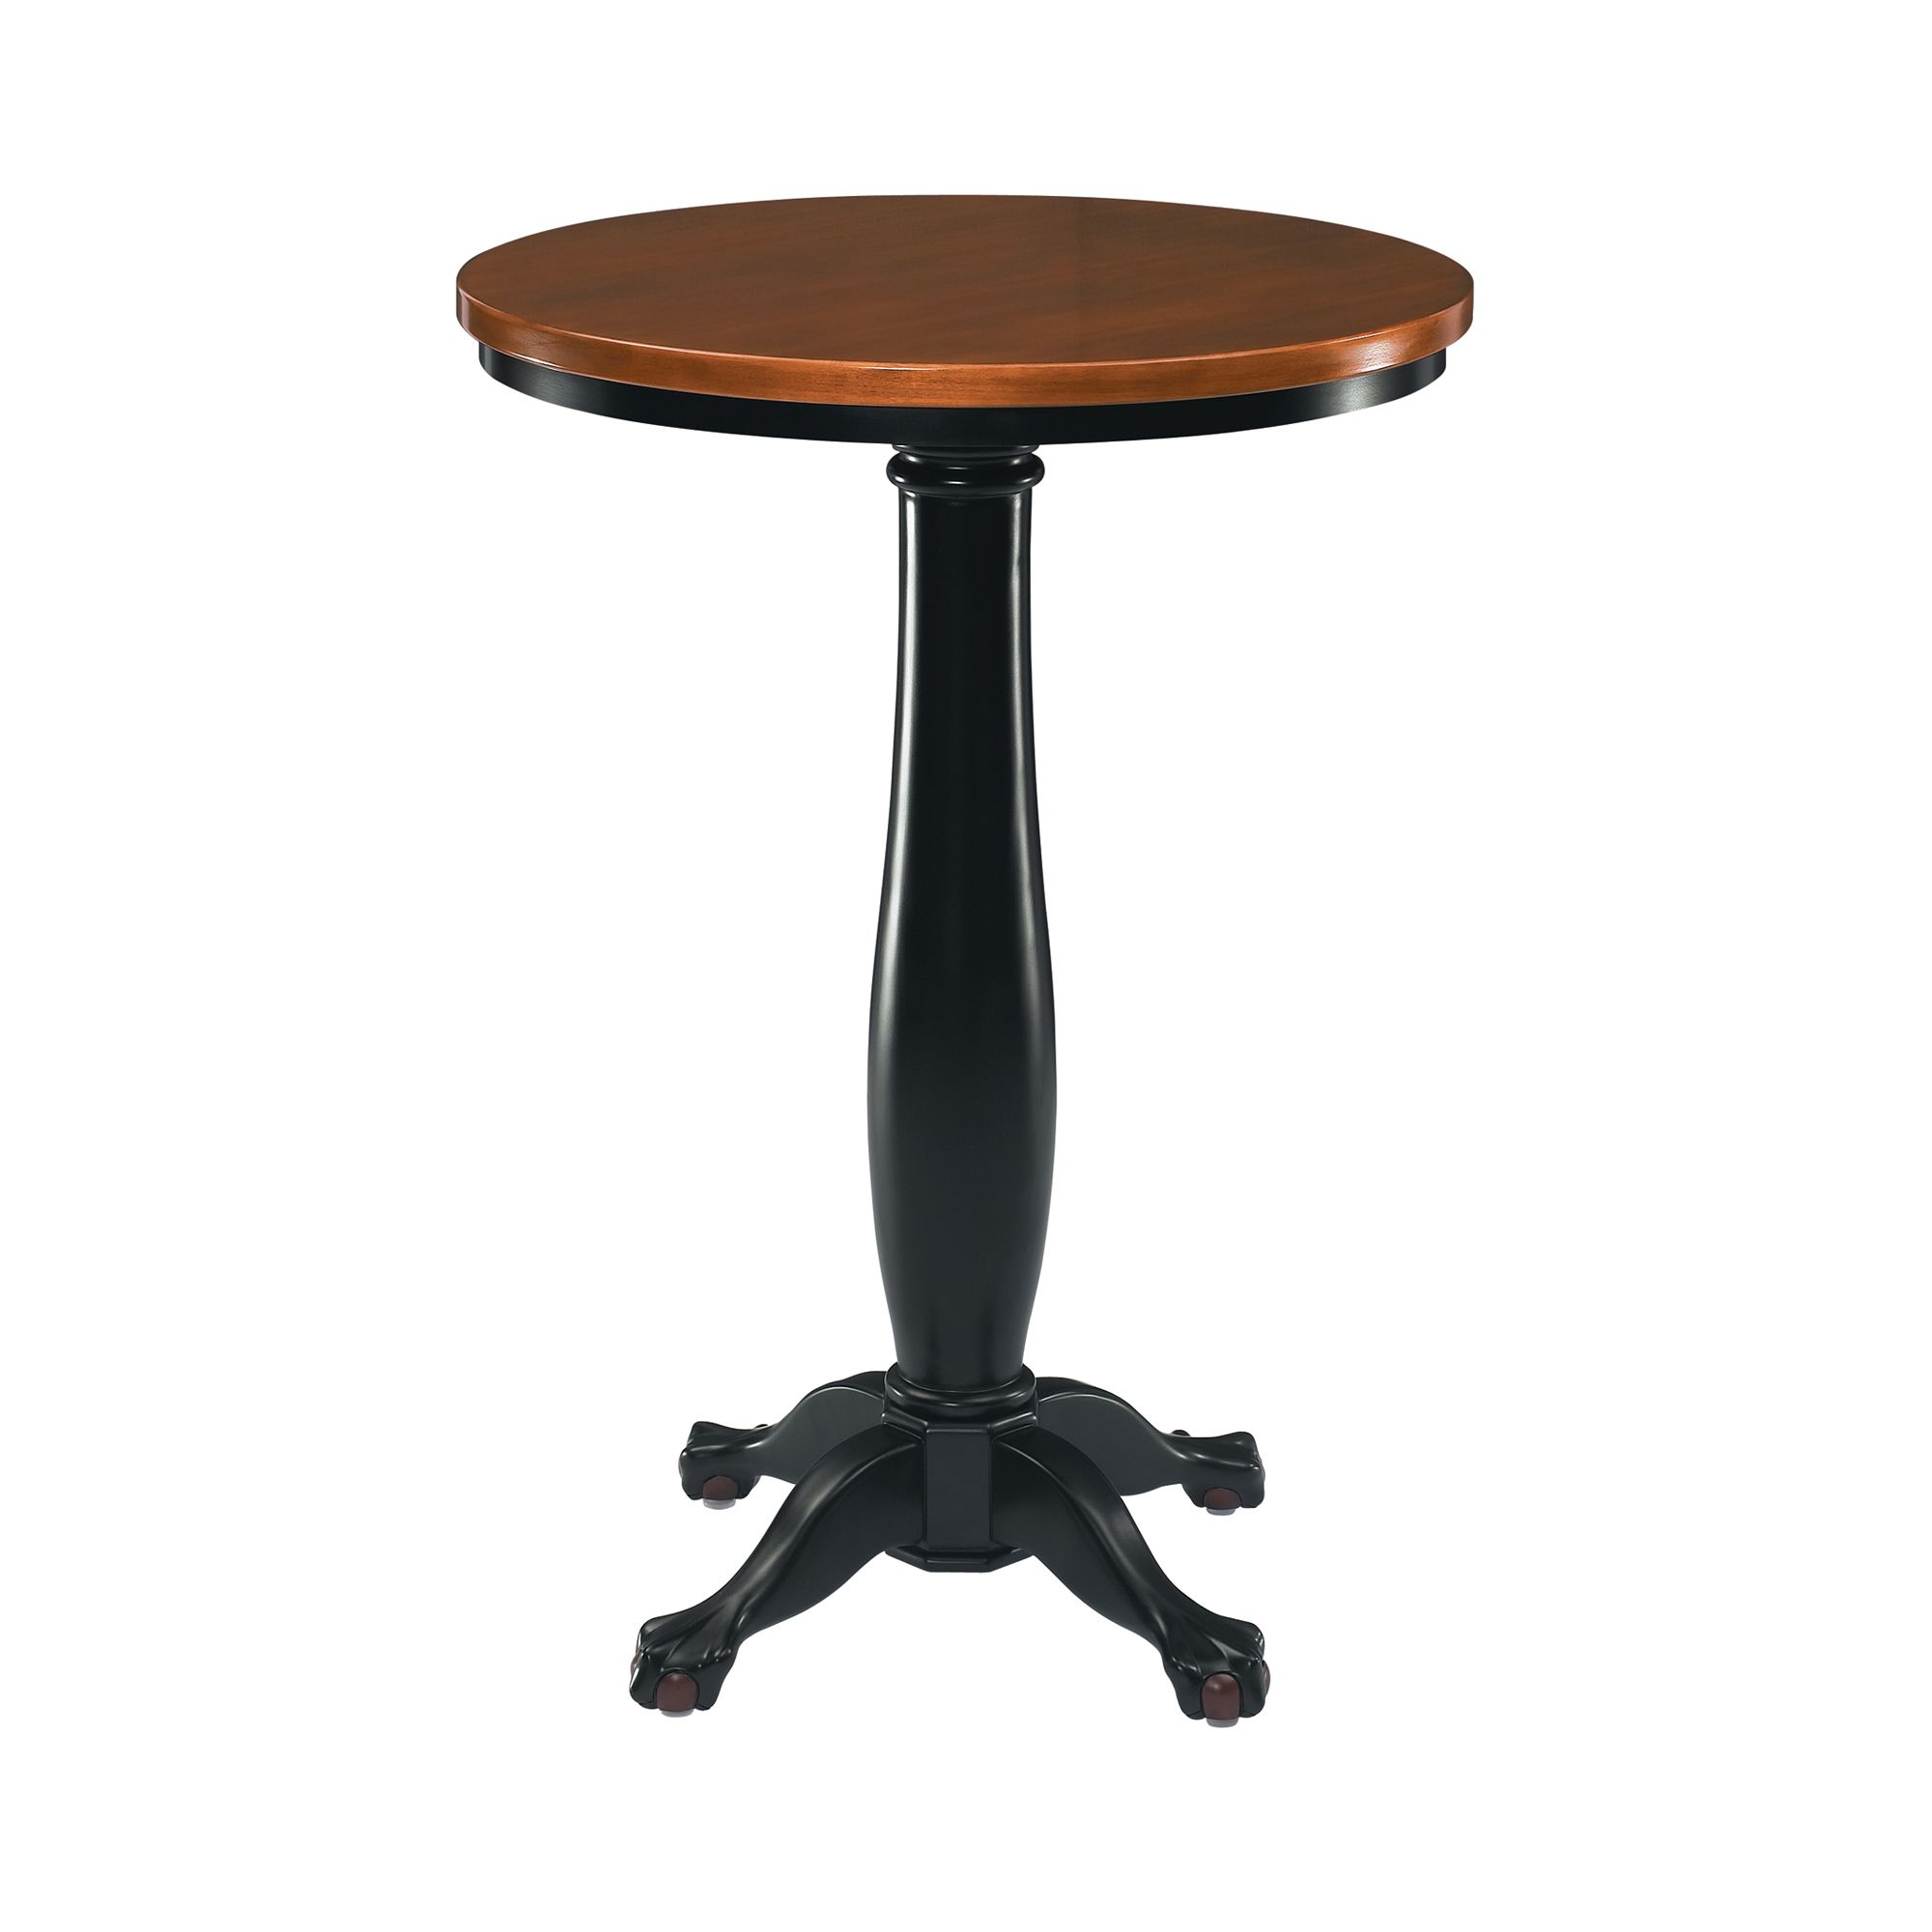 Colonial Ball and Claw Pub Table - Two Tone                                                                                      at mygofer.com